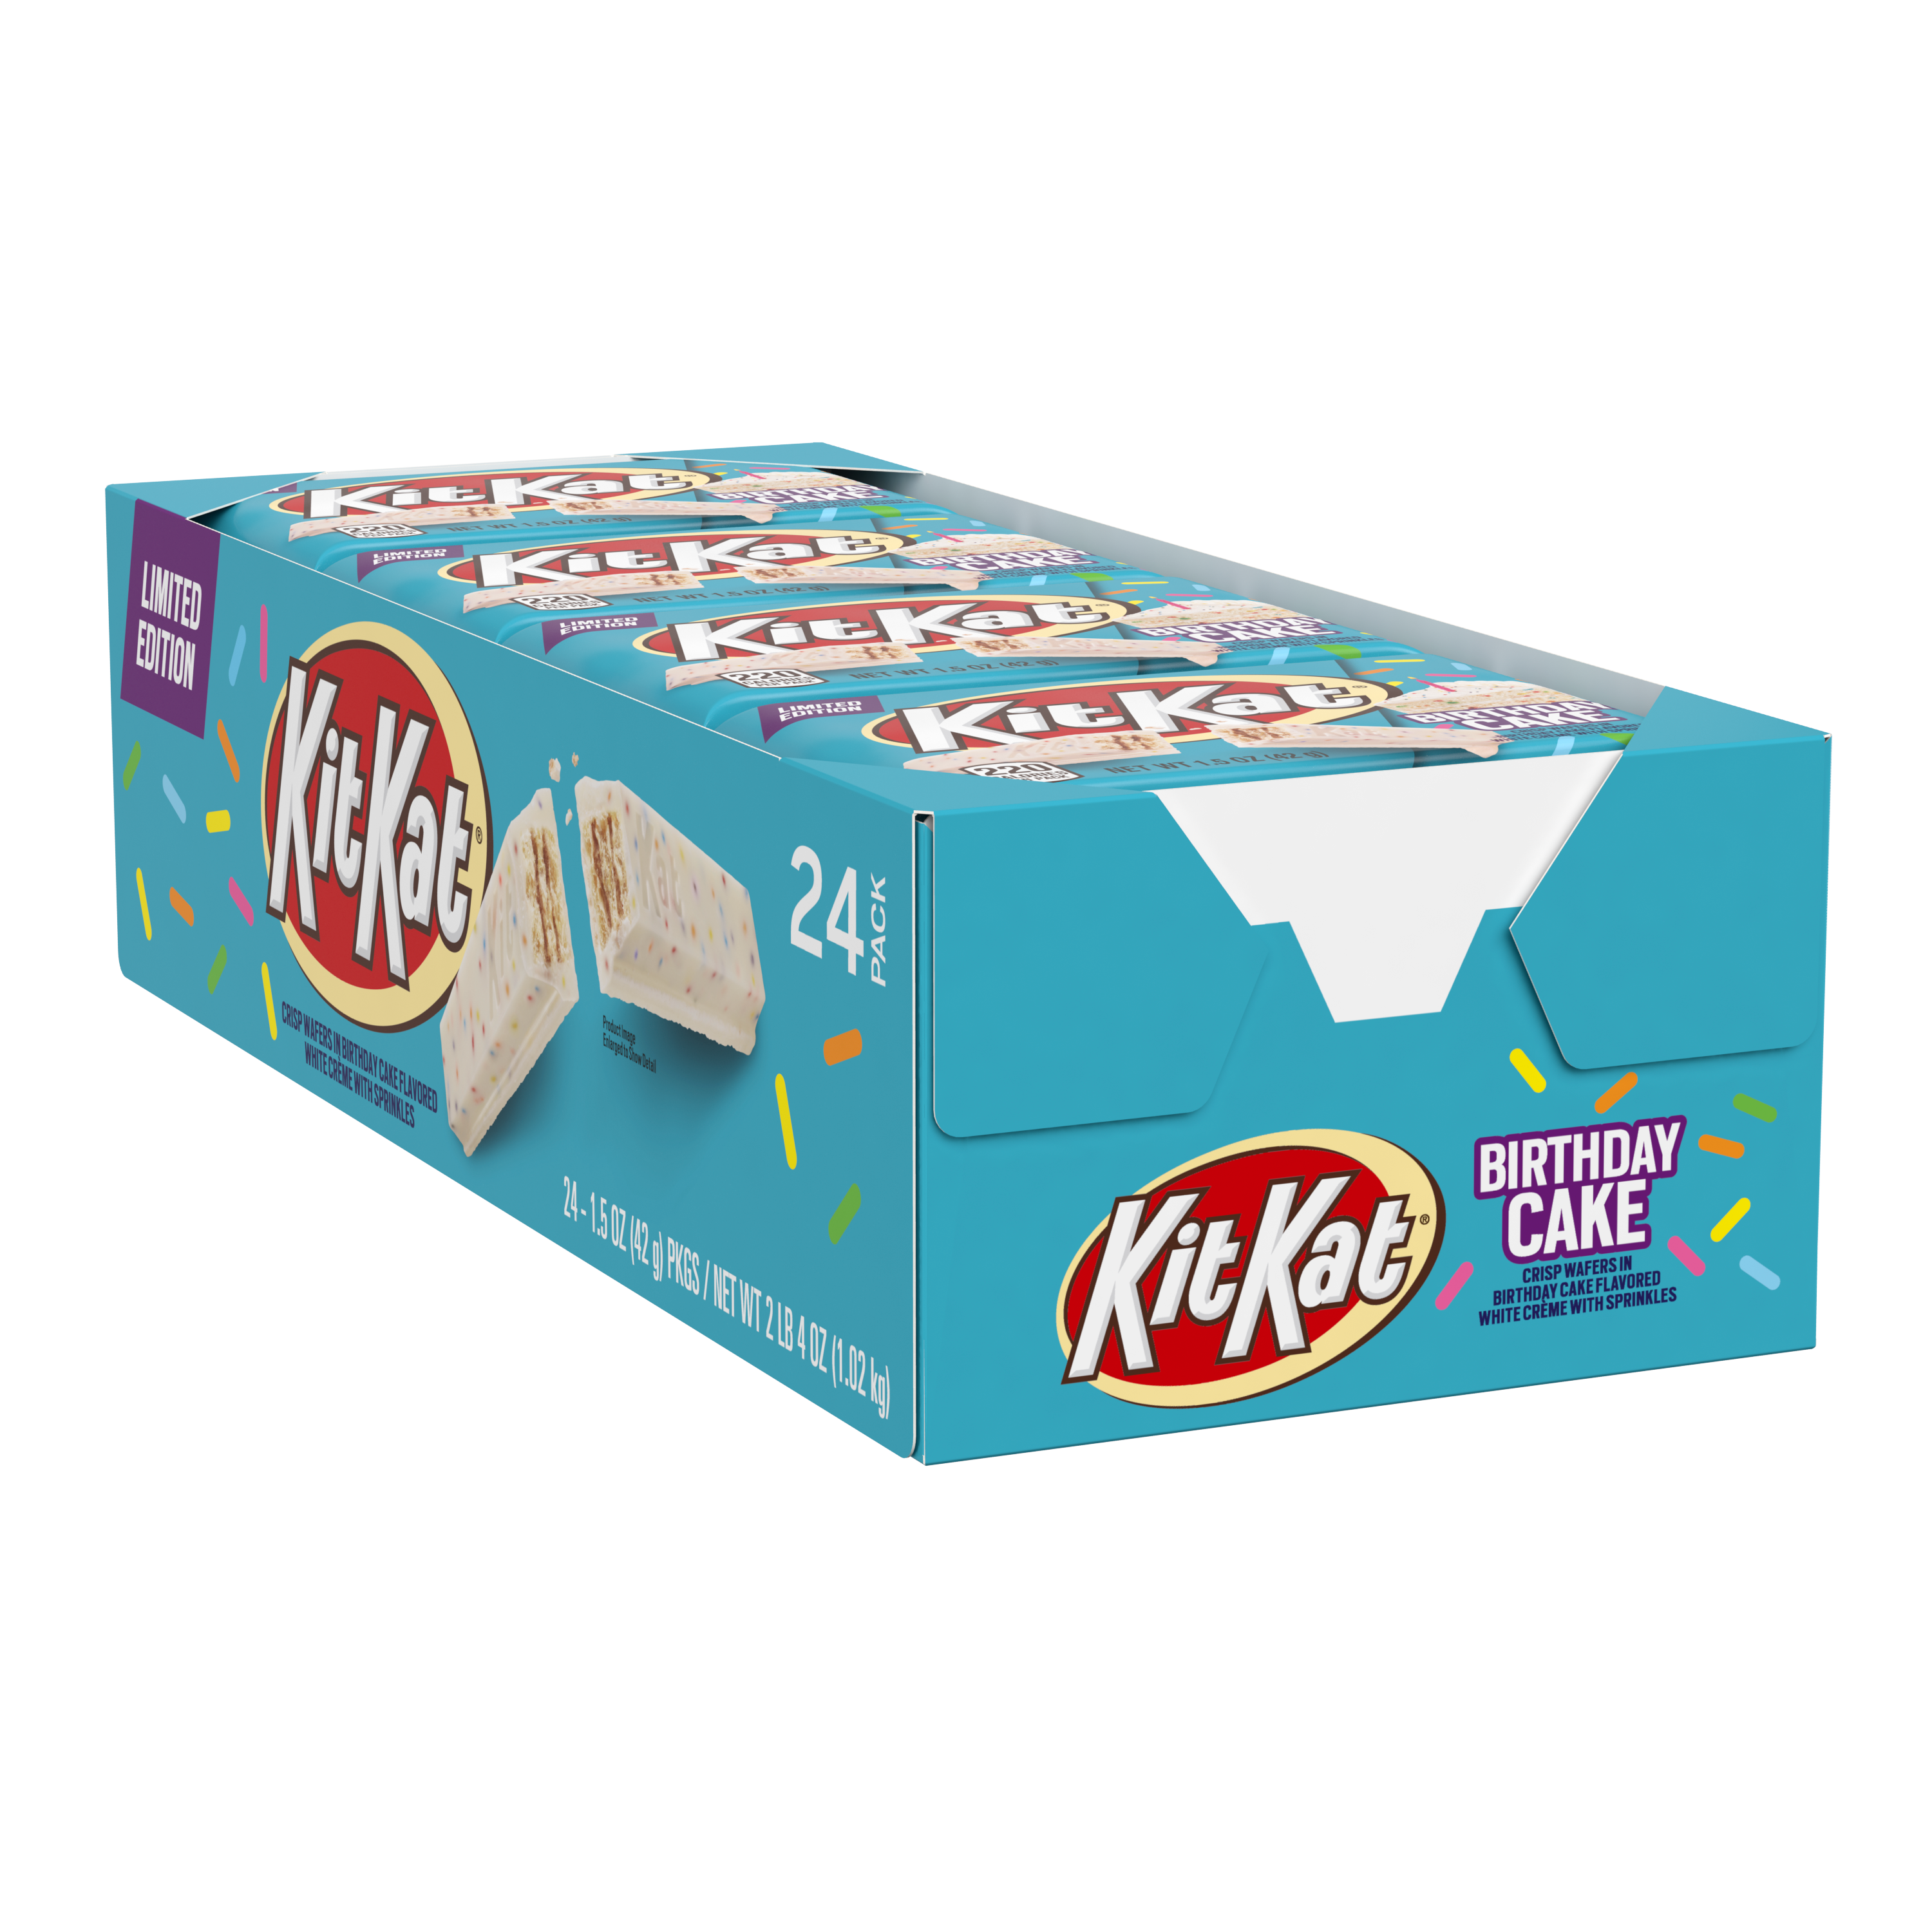 Remarkable Kit Kat Limited Edition Crisp Wafers In Birthday Cake Flavored Funny Birthday Cards Online Fluifree Goldxyz